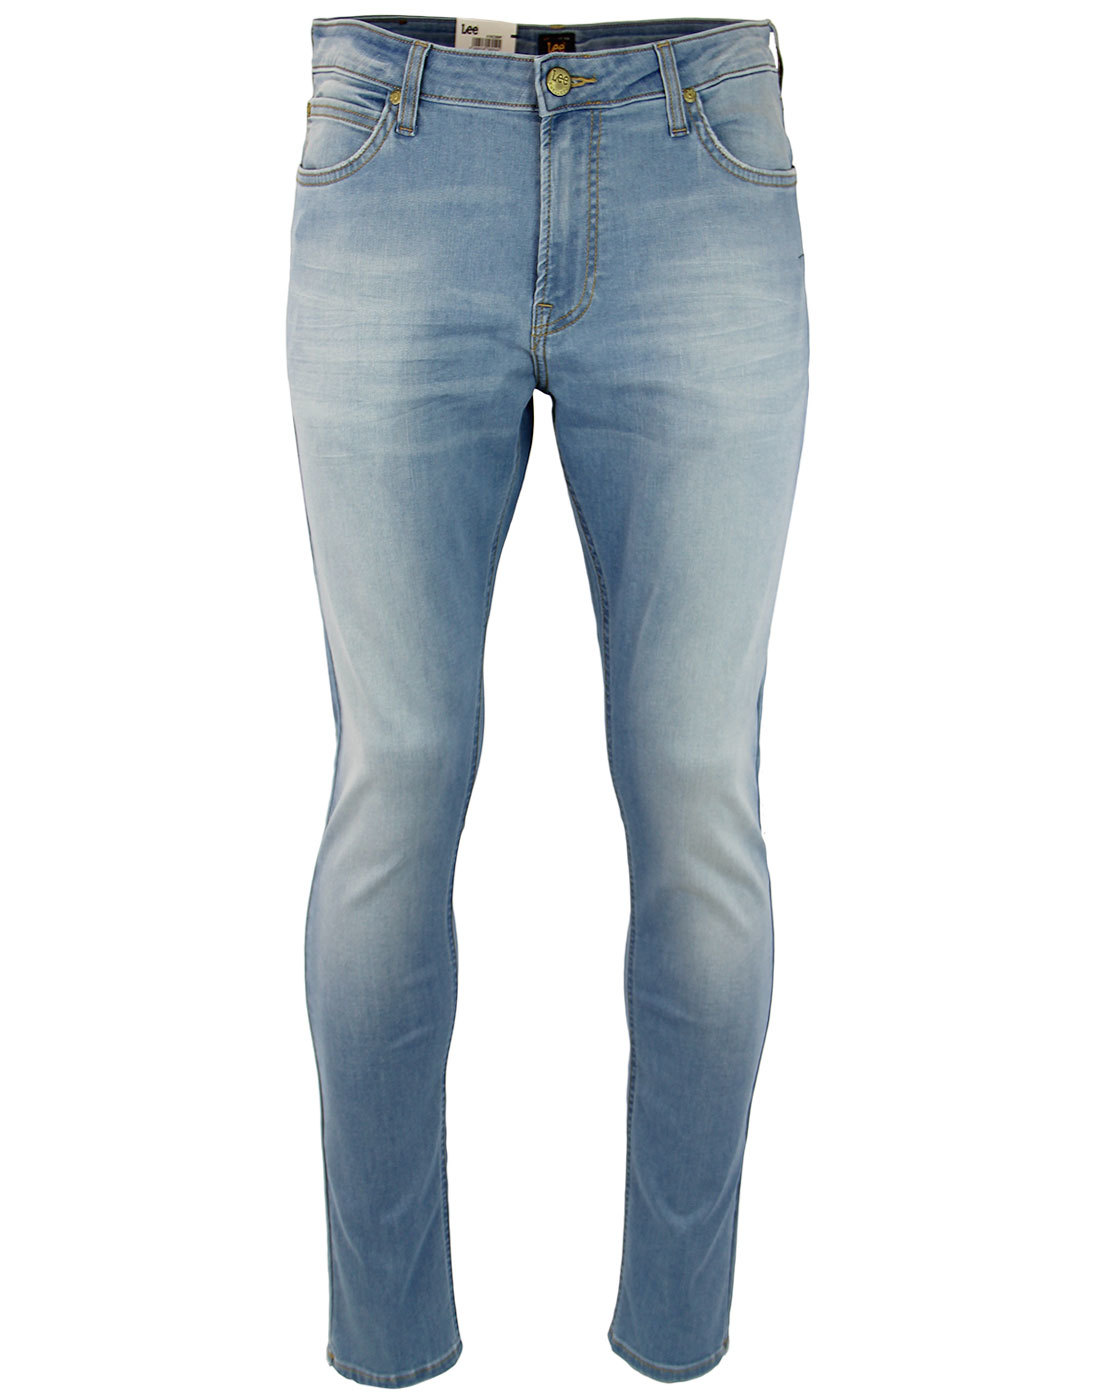 LEE Malone Retro Regular Waist Skinny Jeans (SB)